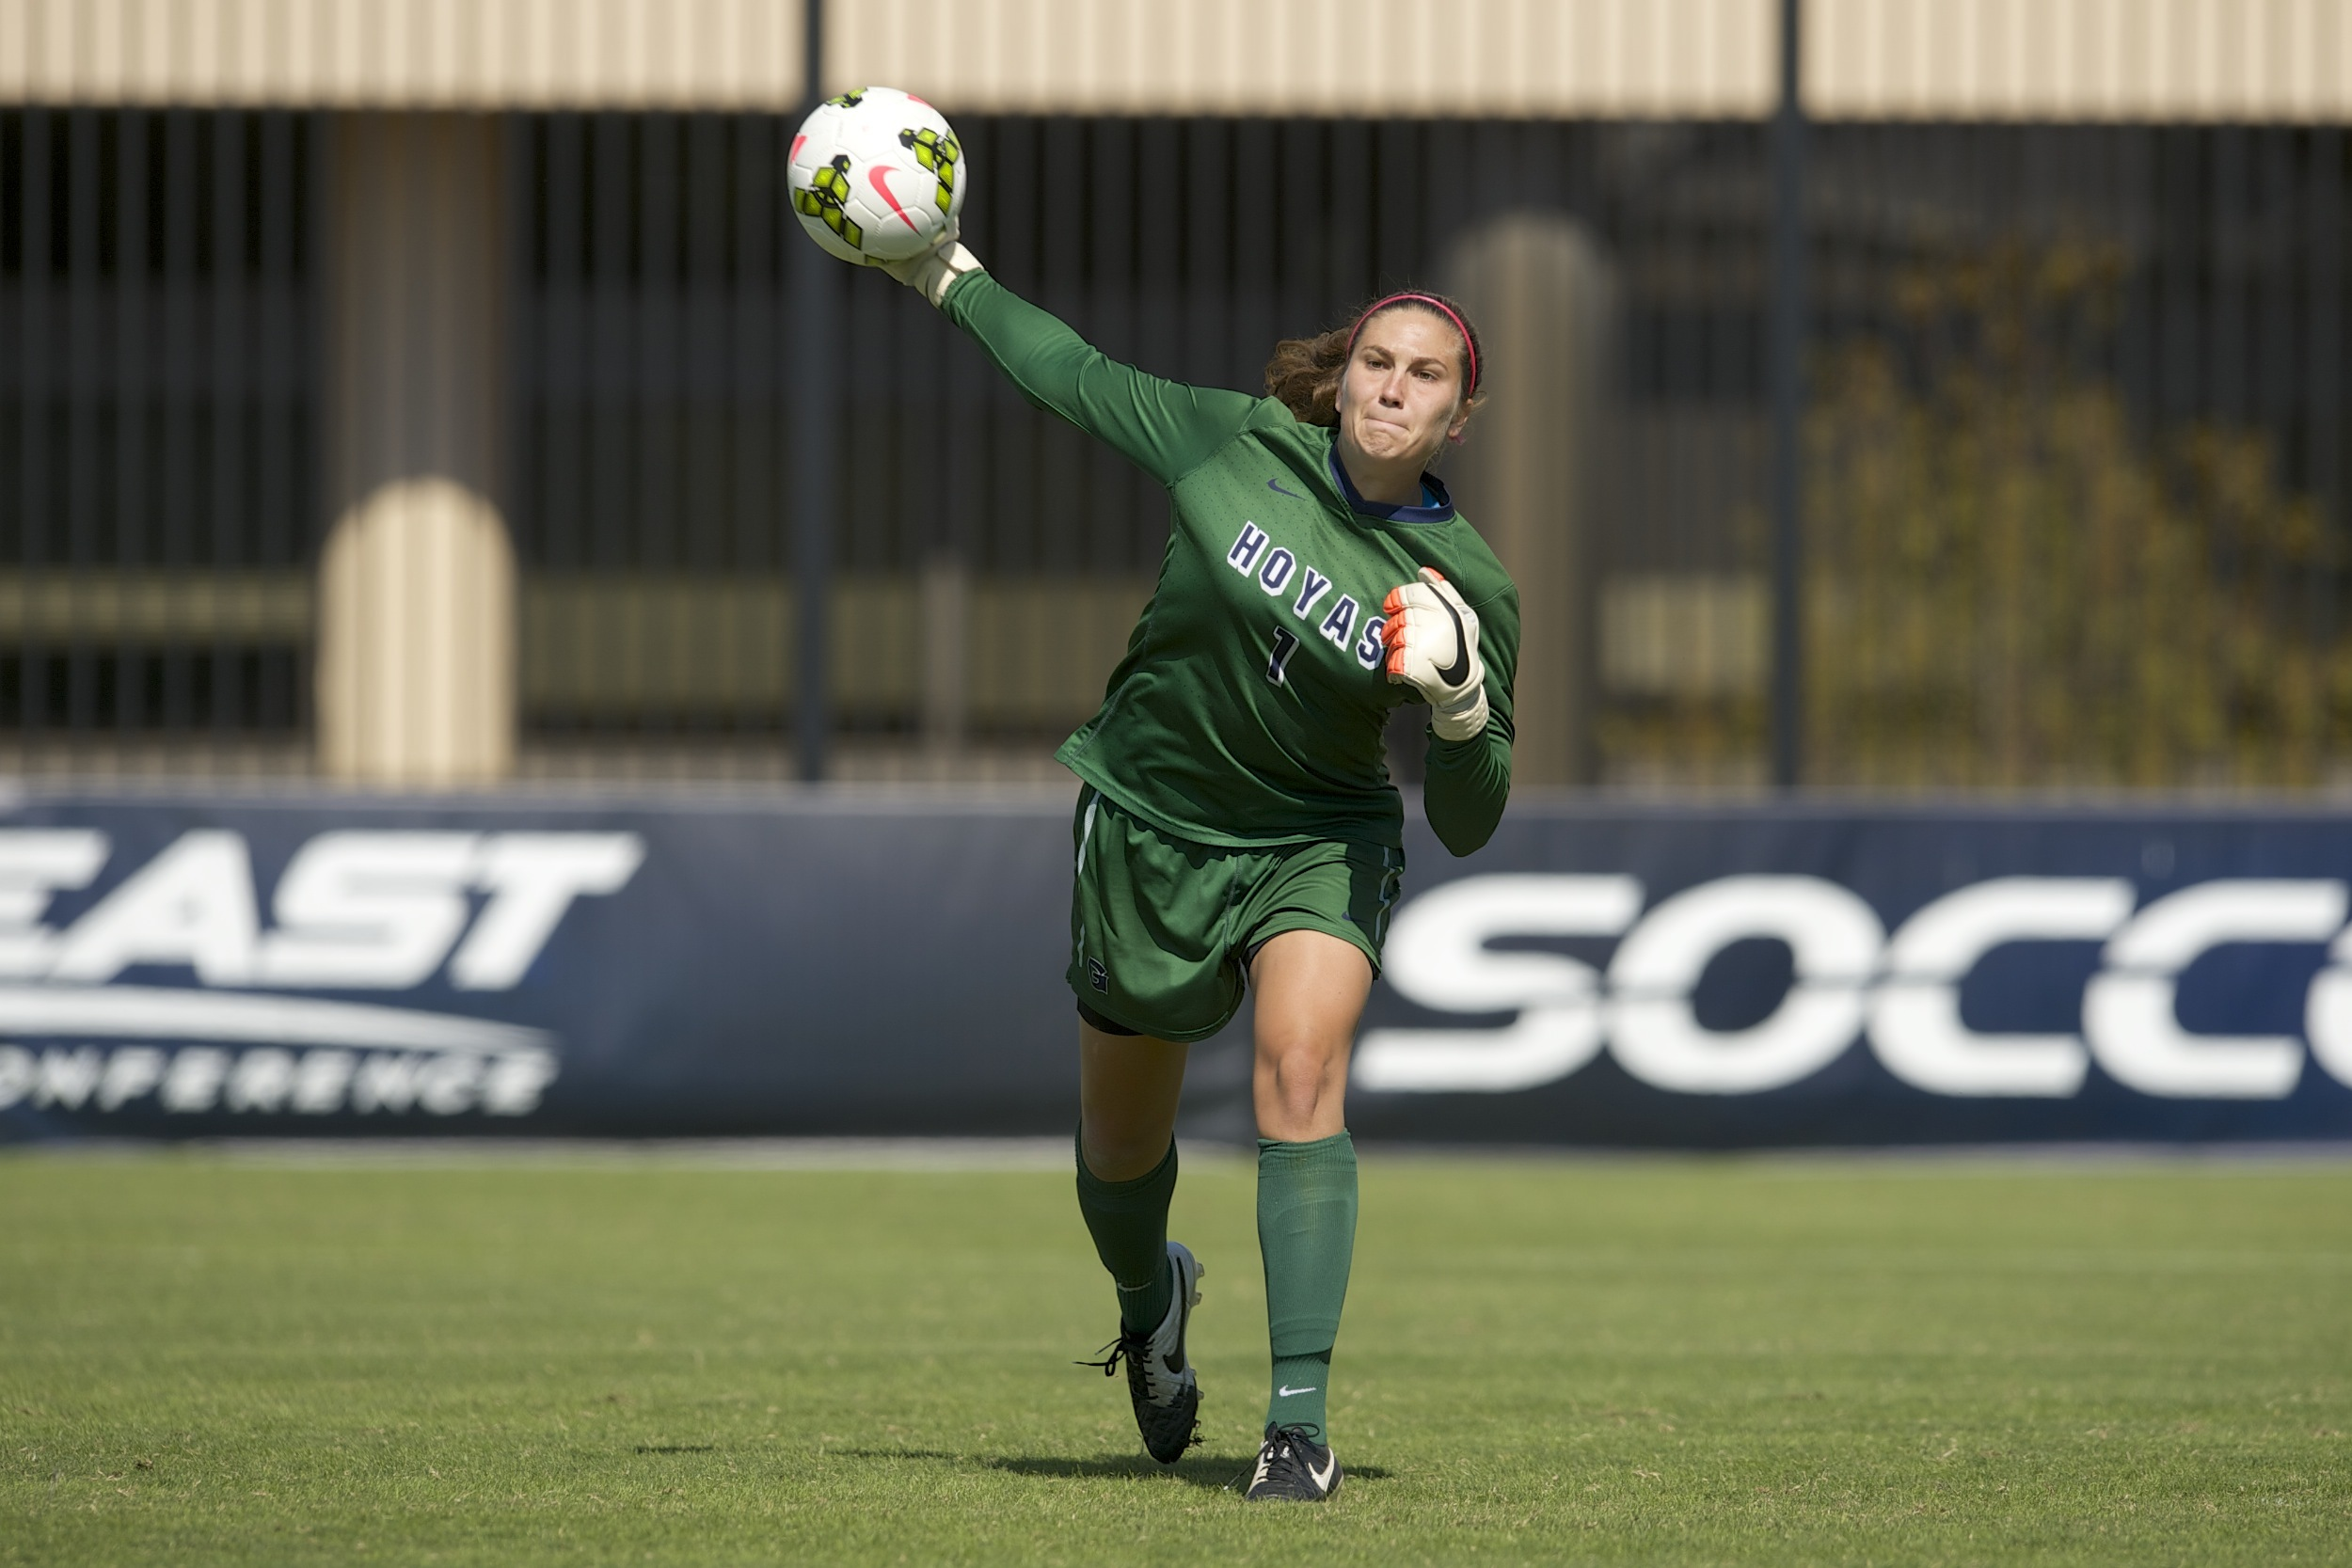 Georgetown scored early in the second half to break a scoreless tie and take the lead, but No. 25 Connecticut took advantage of key opportunities in the second half en route to a 2-1 win over the Hoyas at Shaw Field on Thursday afternoon.